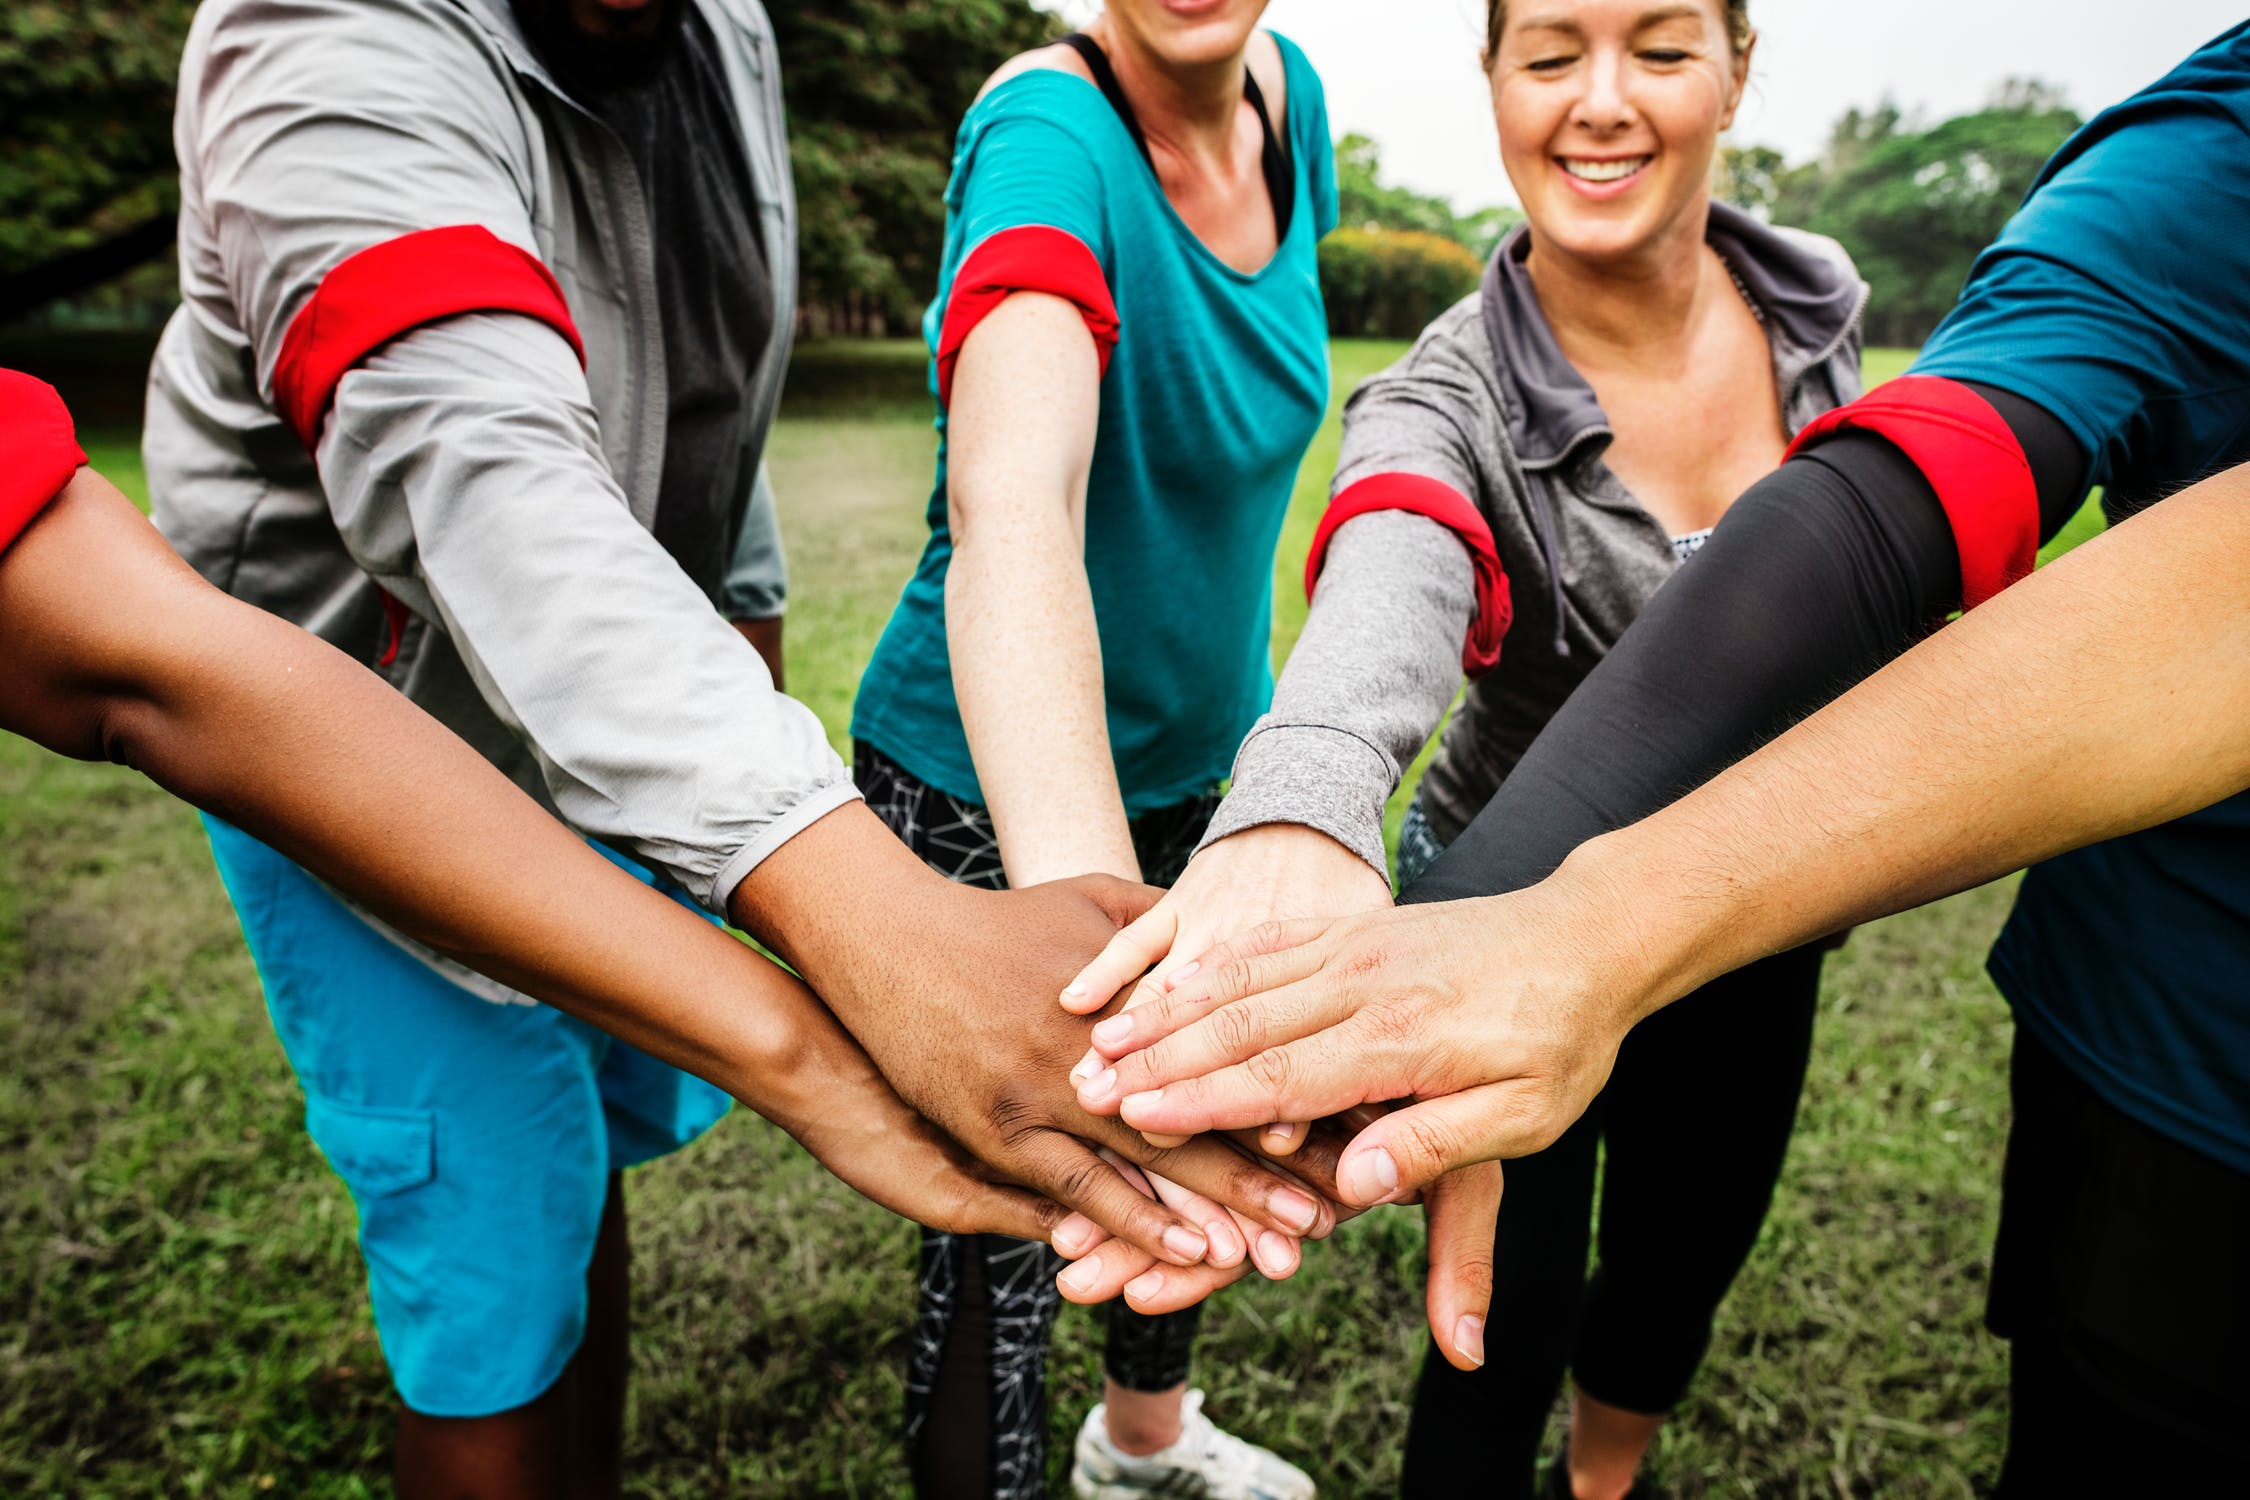 5 Healthy Activities You Can Do Over The Weekend